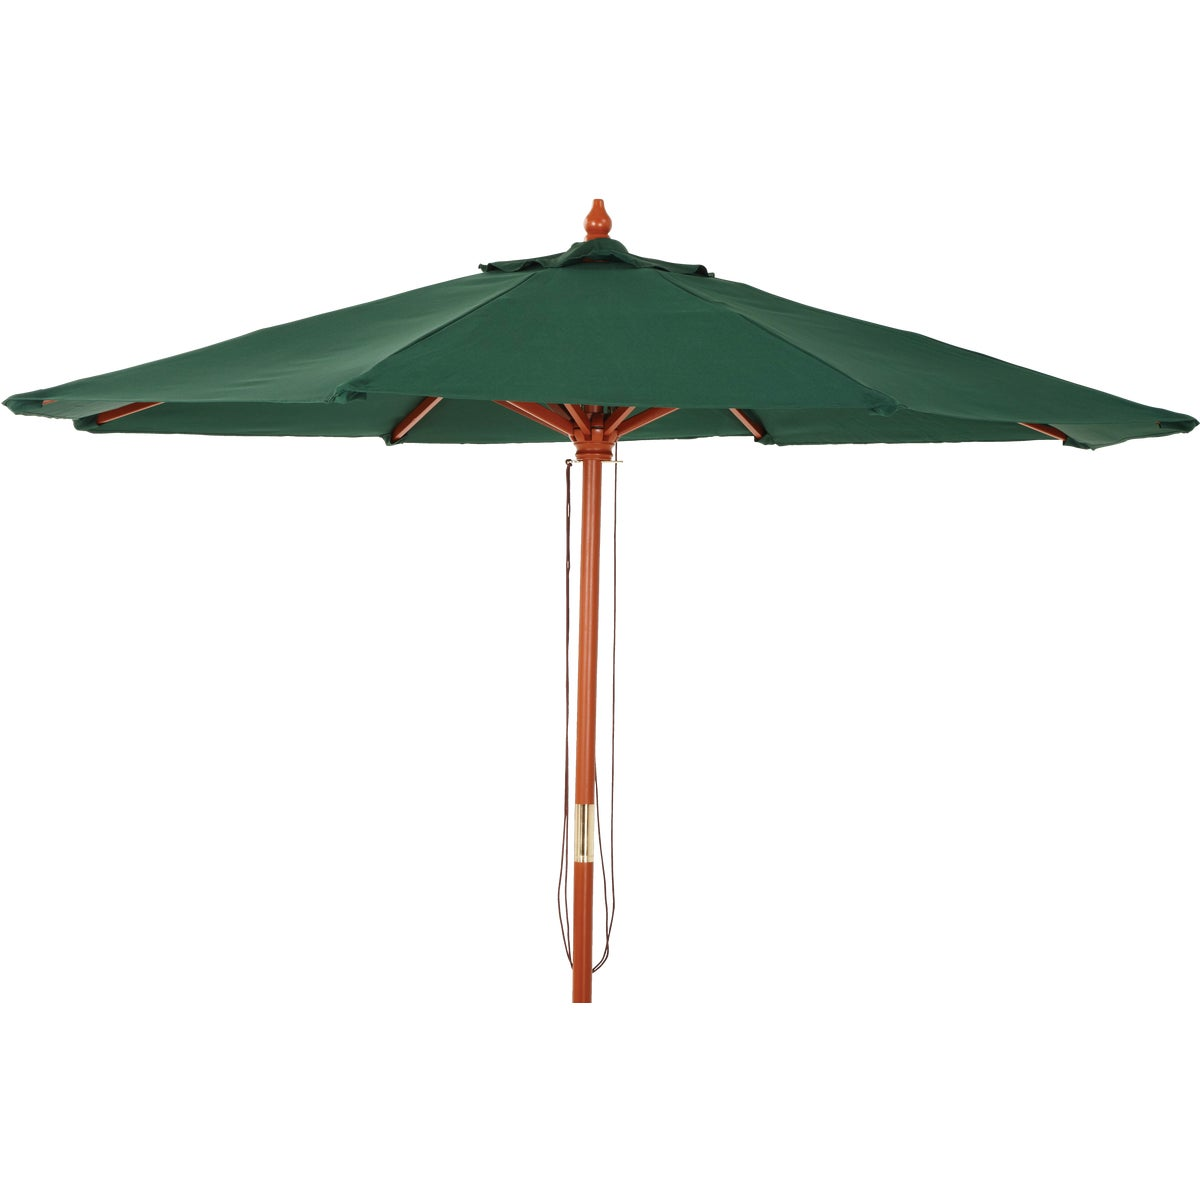 9' MARKET GREEN UMBRELLA